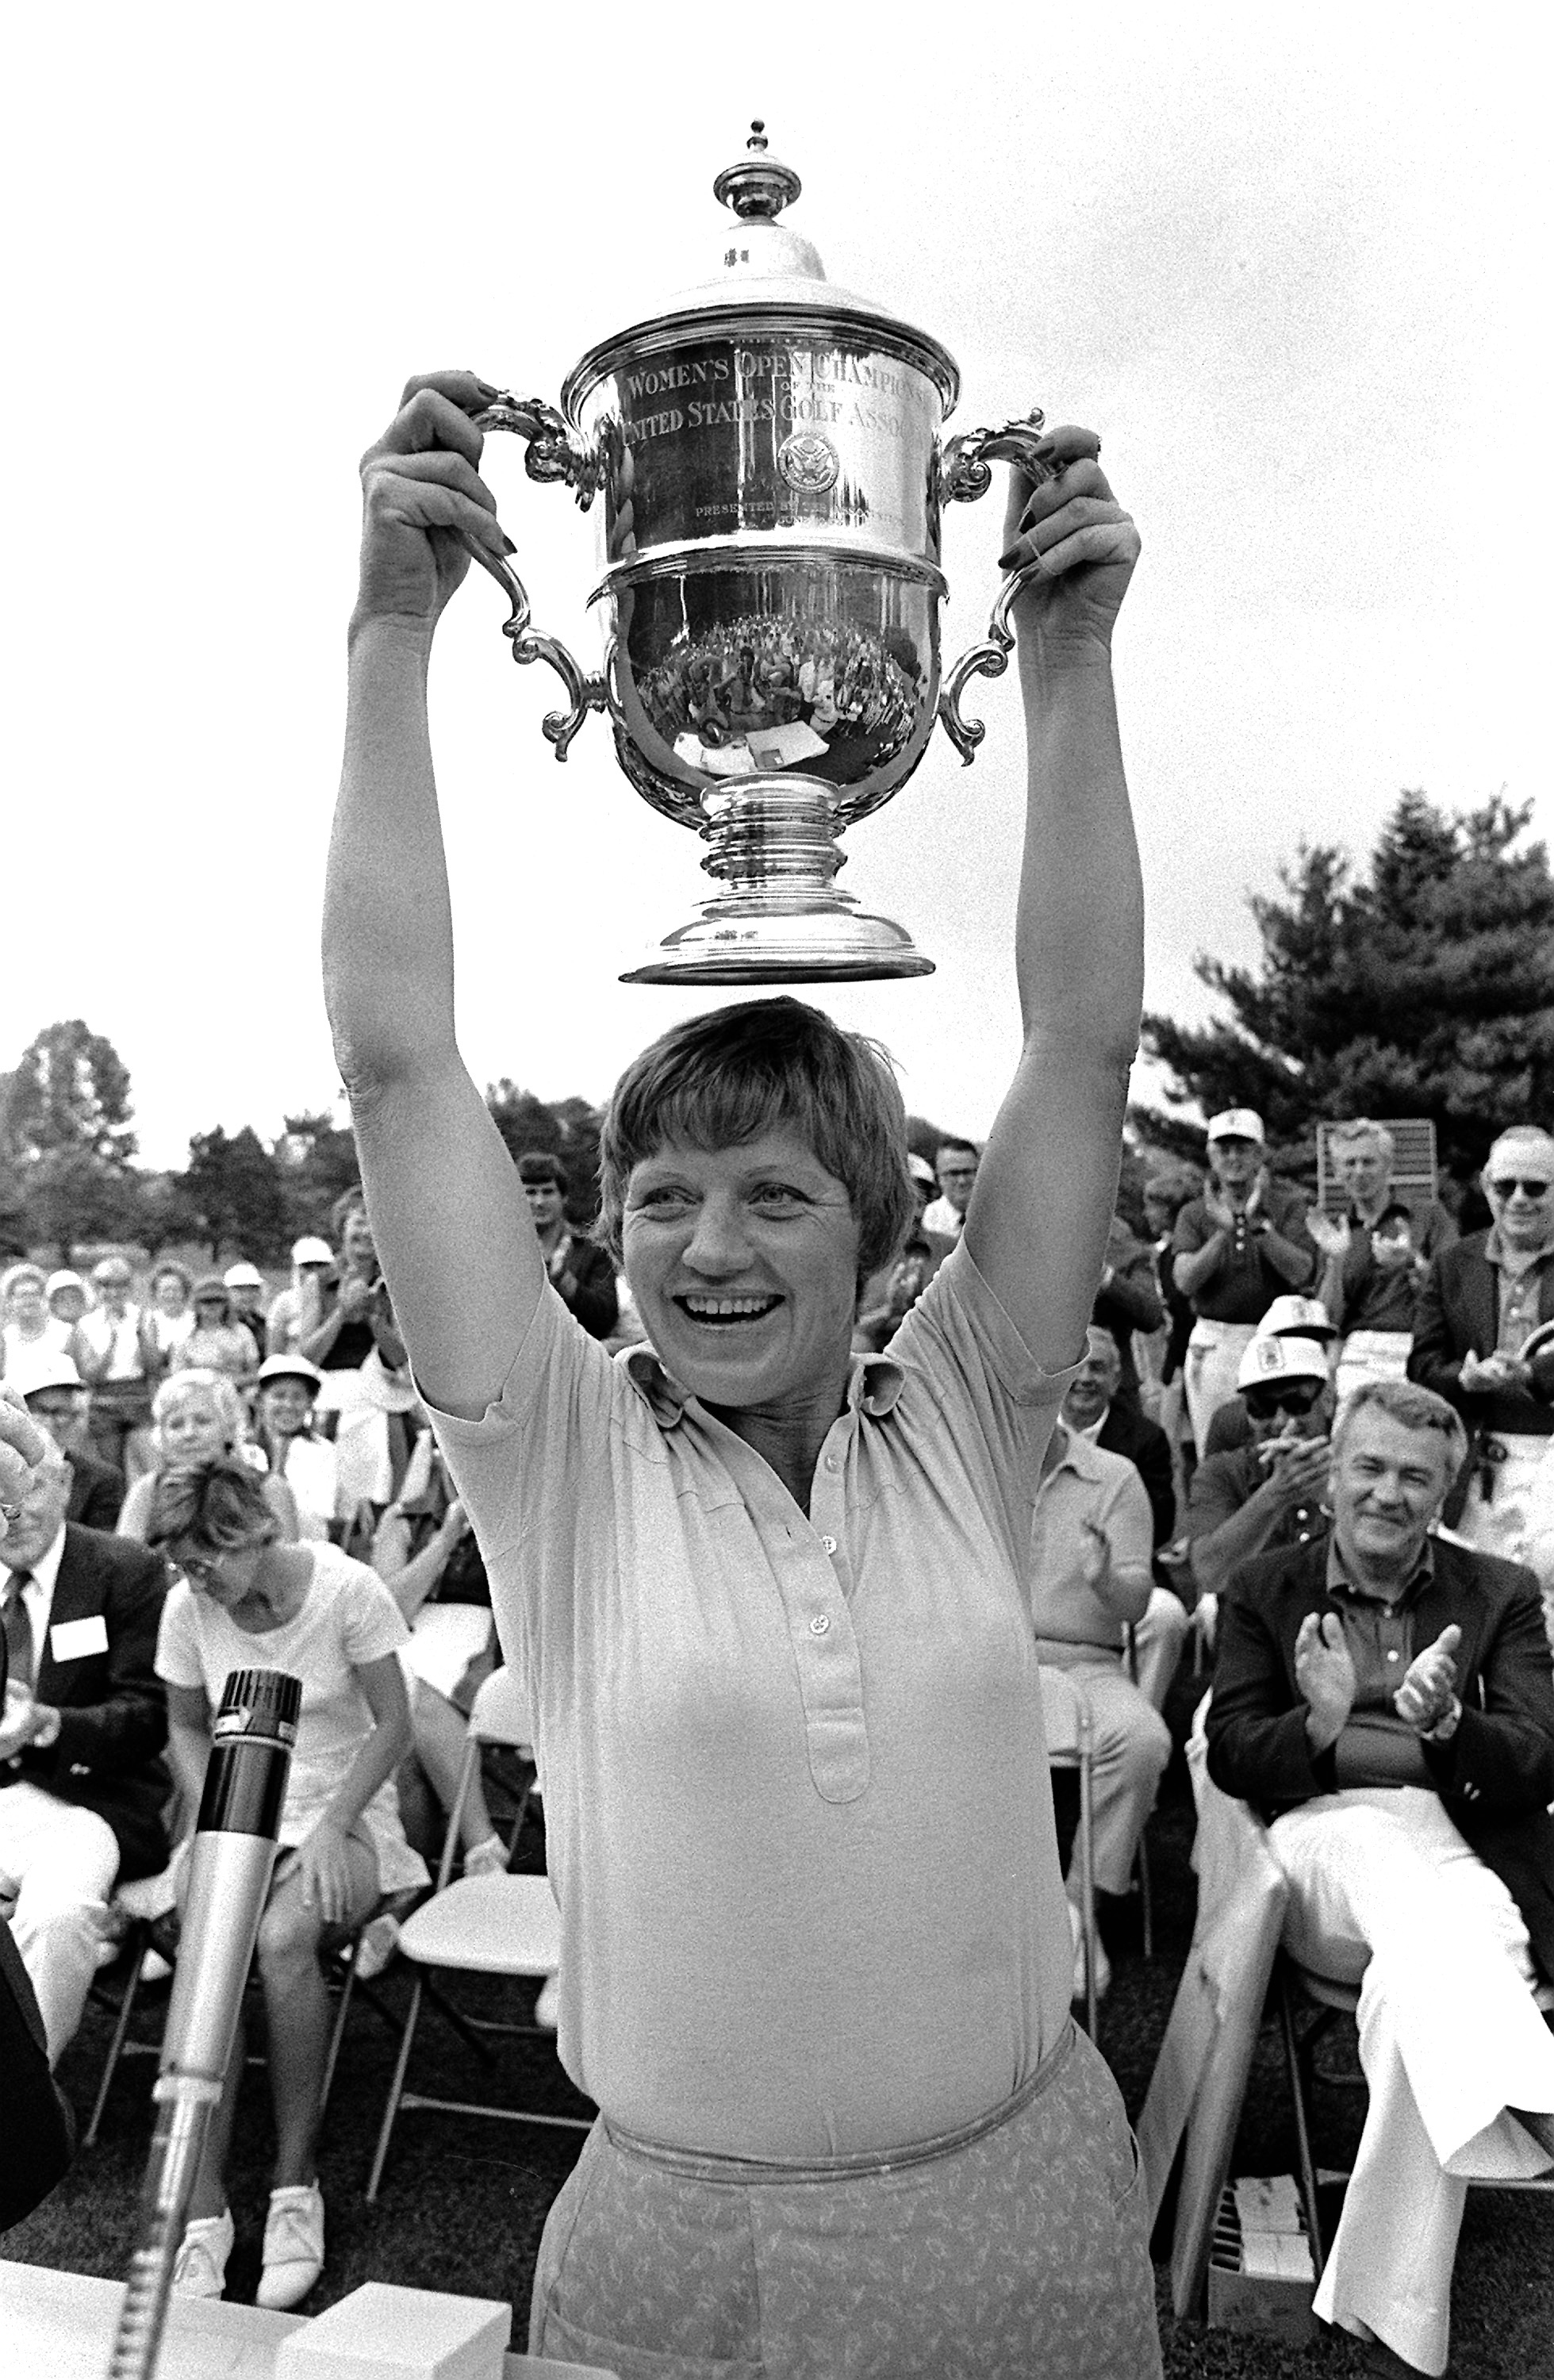 JoAnne Carner shows her trophy after winning the U.S. Women's Open Golf Tournment in suburban Philadelphia, Pa., Monday, July 12, 1976. (AP Photo/Hires)